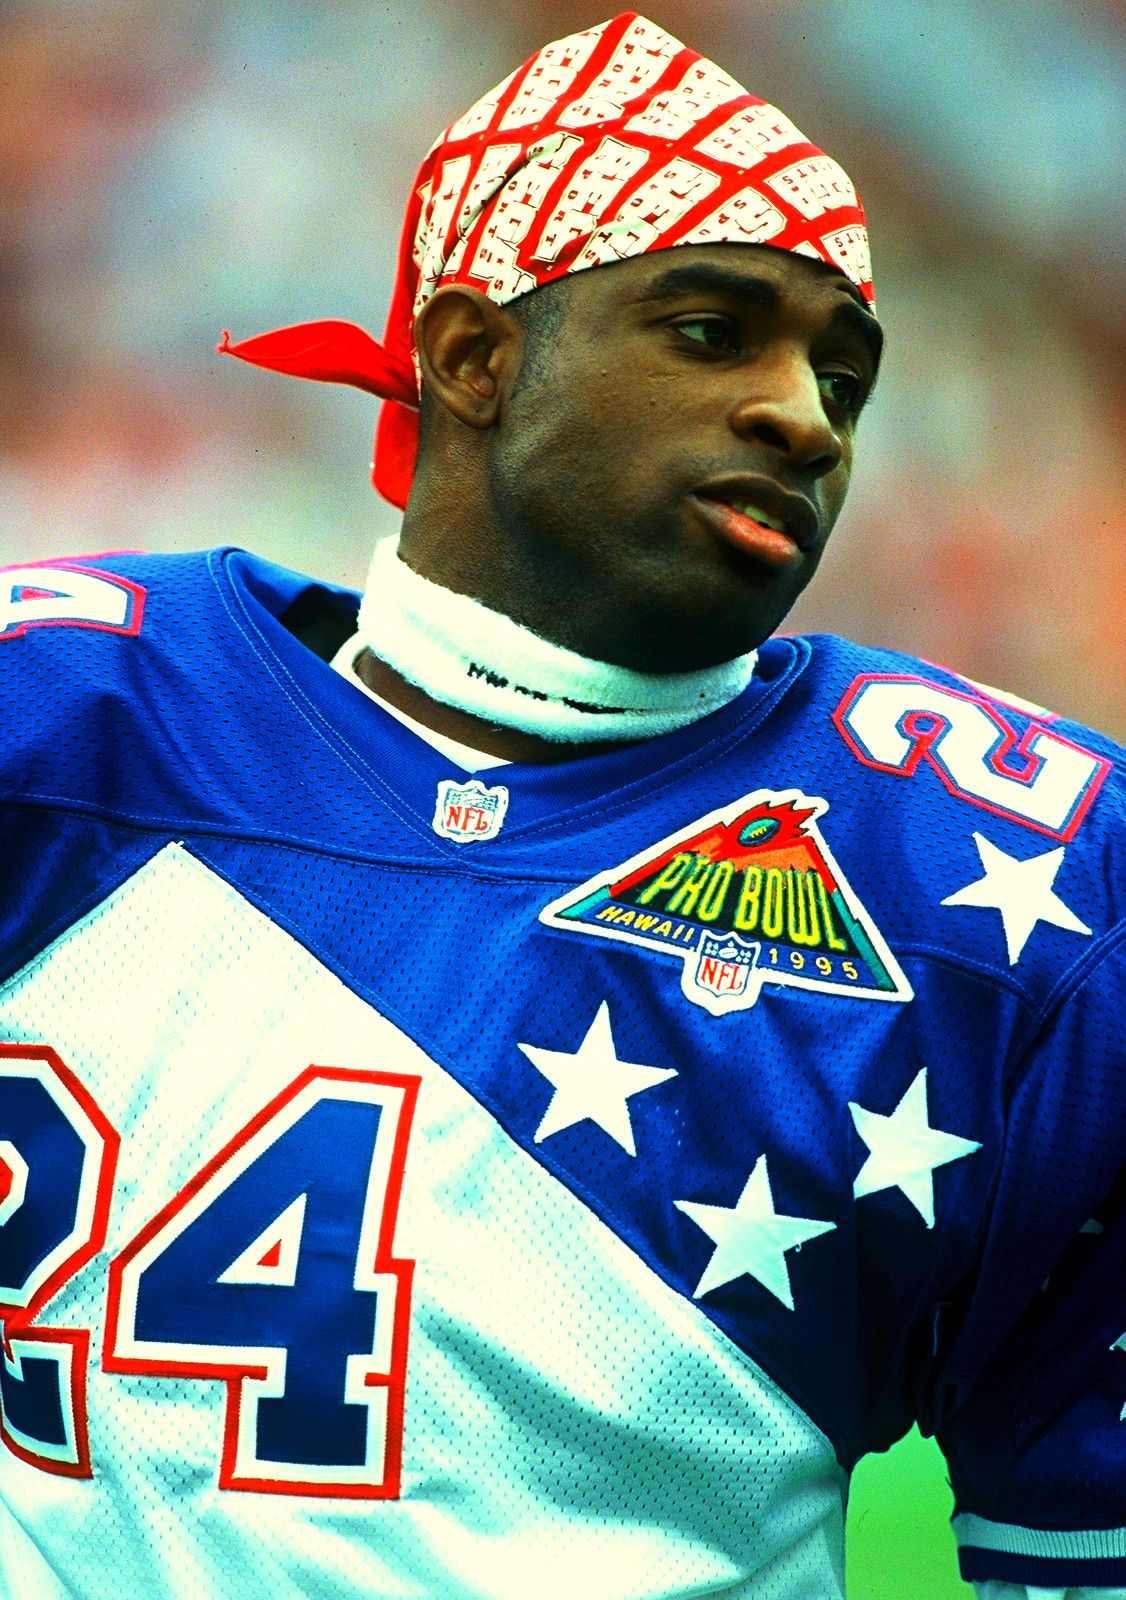 official photos 248d7 9d308 Deion Sanders #24 in Pro Bowl!! | Love!! | Dallas cowboys ...